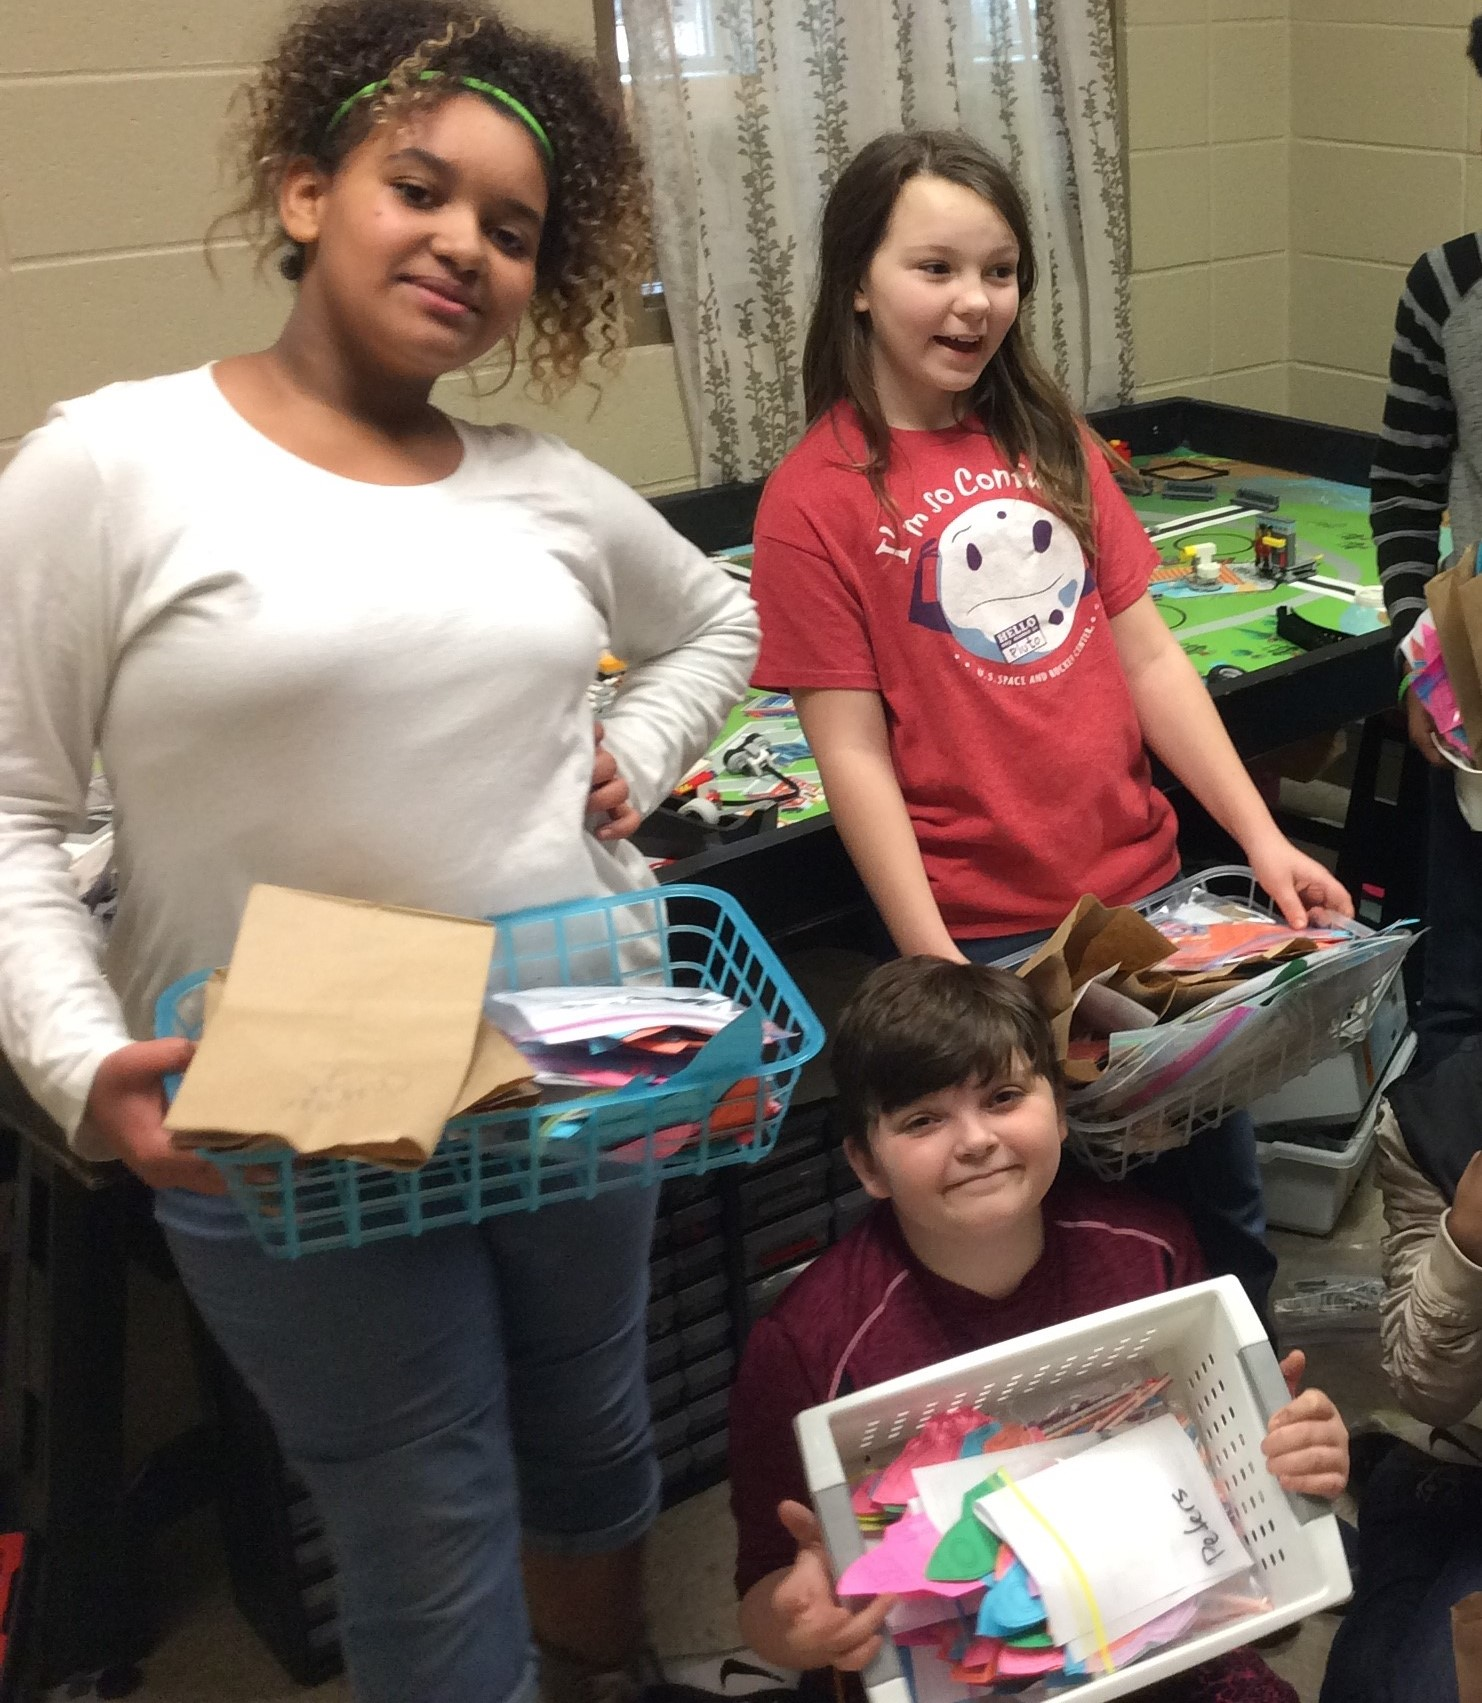 Blossomwood robotics students deliver candy grams to classrooms